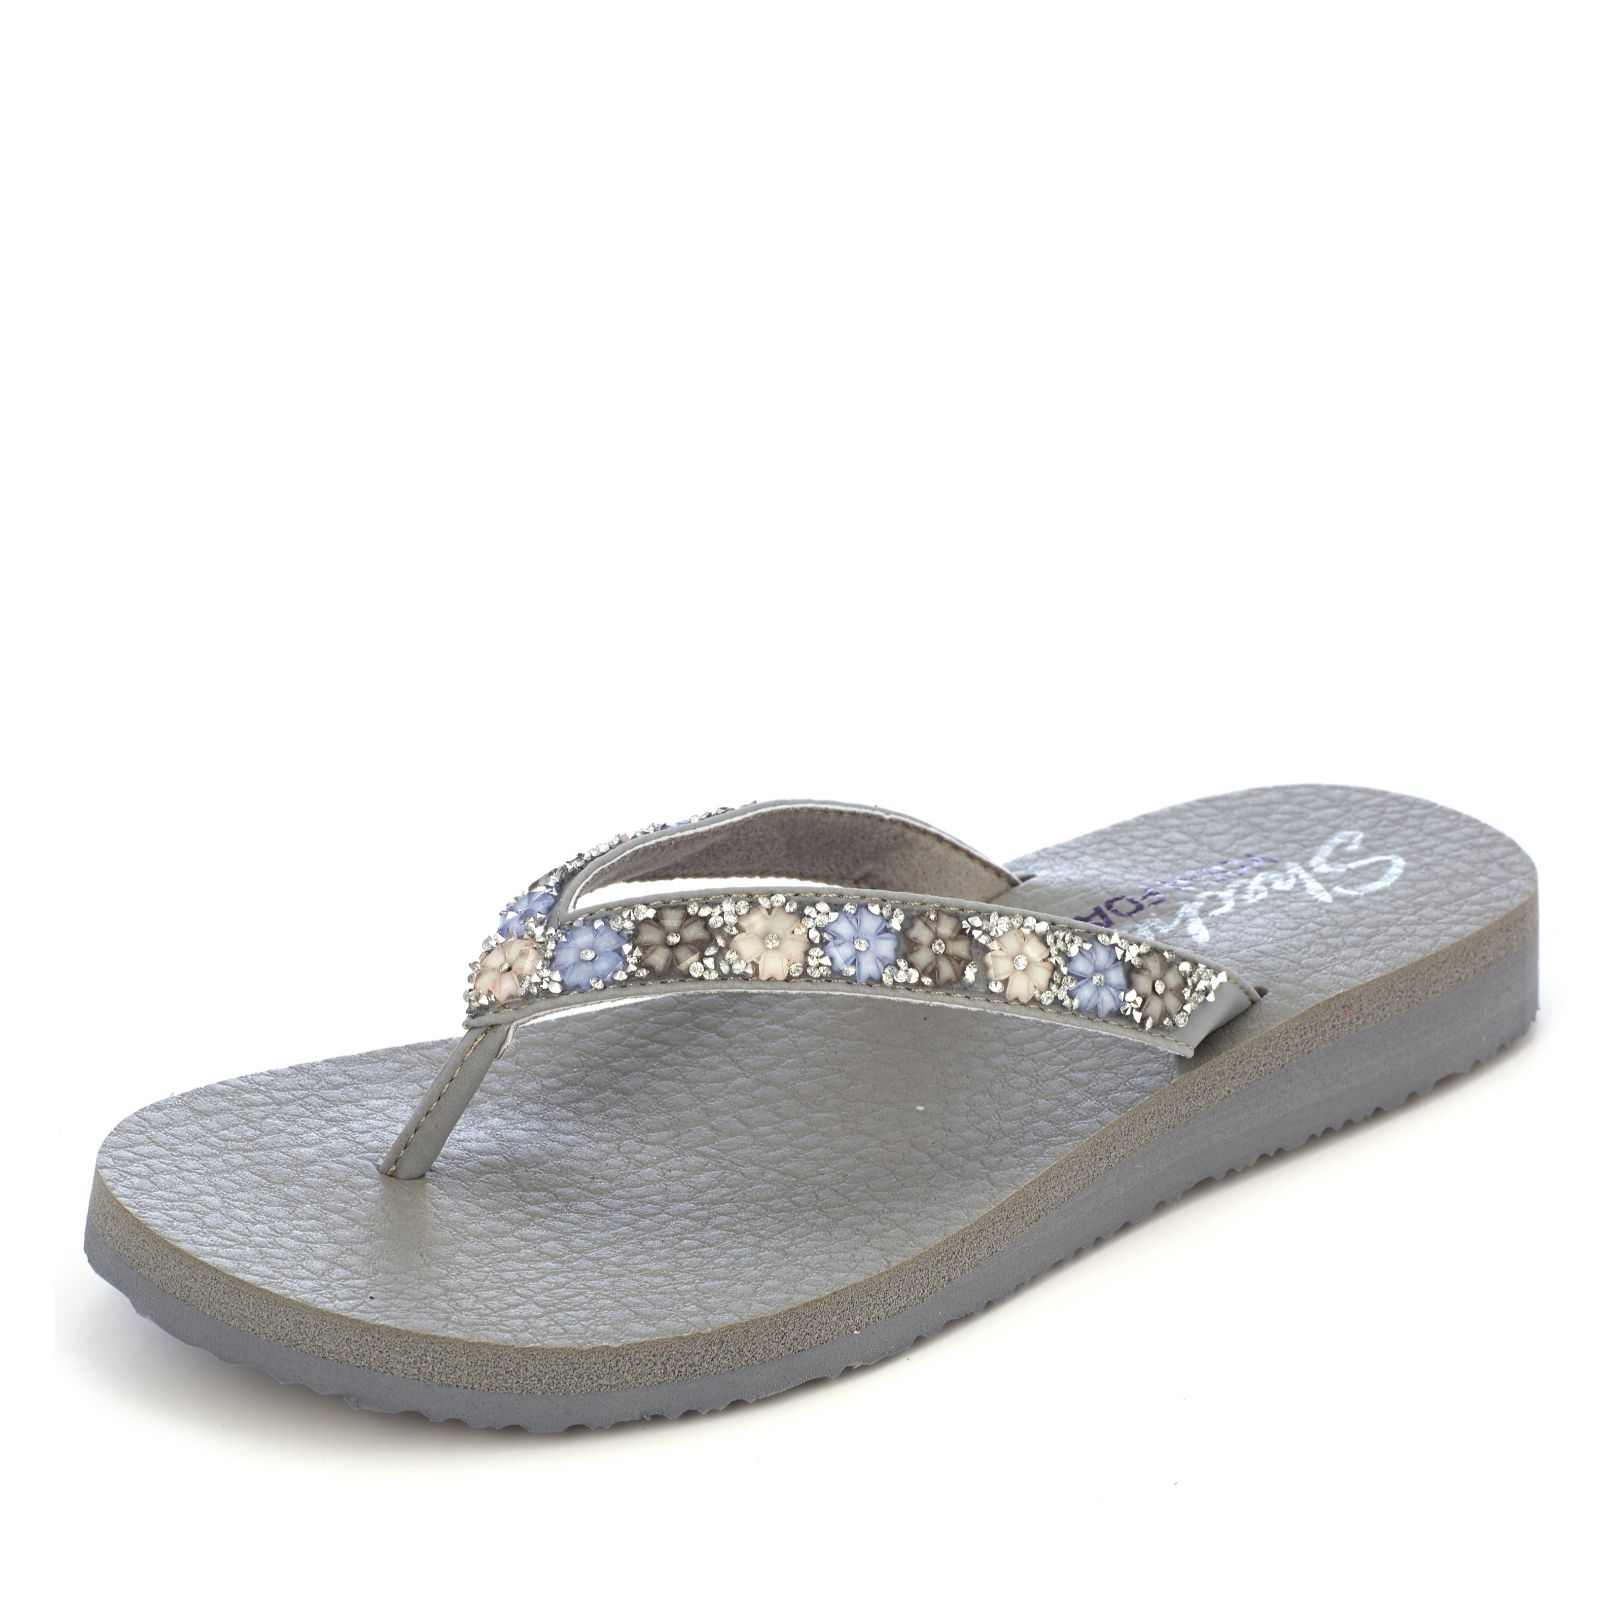 0b9049165 Skechers Meditation Daisy Delight Flower   Rhinestone Sandal with ...